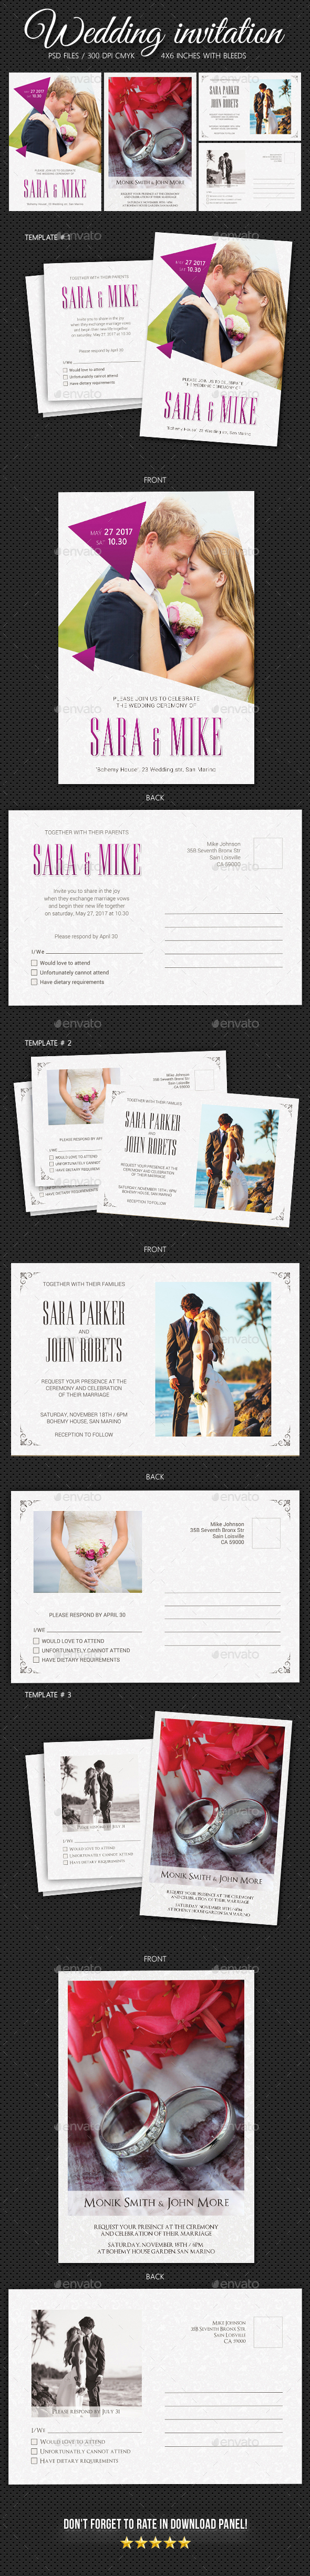 Wedding Invitation Bundle 4 - Weddings Cards & Invites